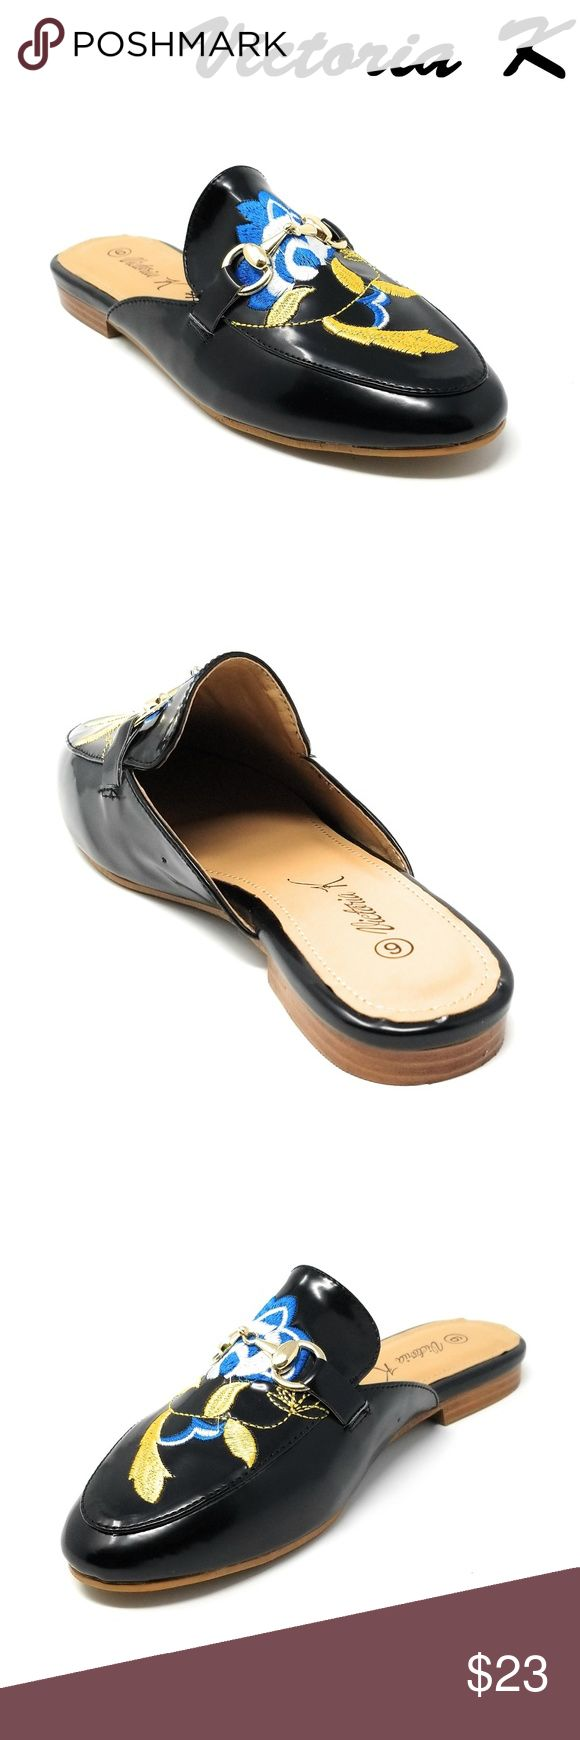 Women Slip-on Mules Slippers, HK-7084, Black Slip on a pair of gorgeous flat mules that make a fashionable woman. Faux-leather upper. Rubberized outer sole for traction. Sizes 6 through 8 are true, but 9 and 10 run small by a half-size. A true statement in ladies shoes fashion! Victoria K Shoes Flats & Loafers